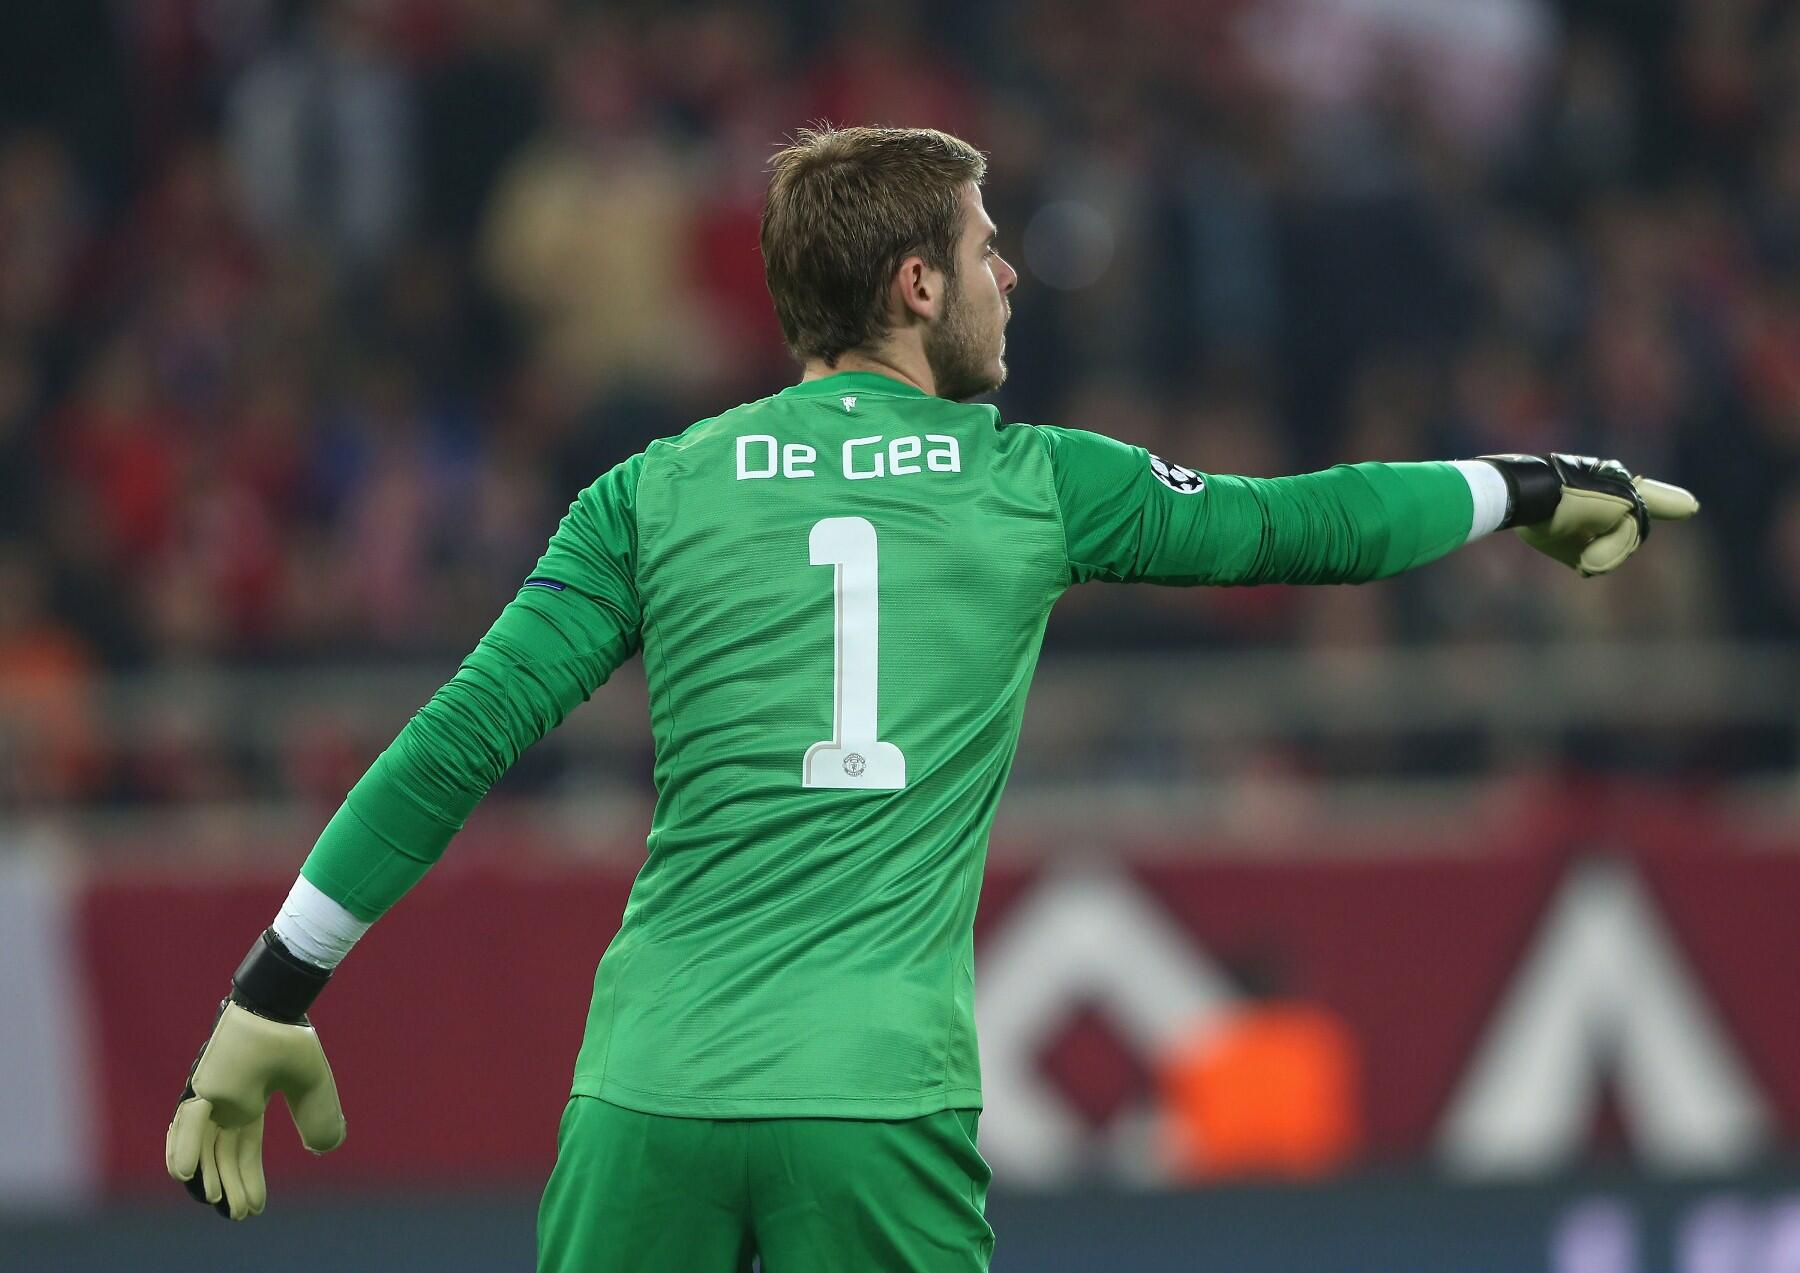 Man of the Match 1/3 - Retweet this if @D_DeGea gets your vote for #mufc against Olympiacos. http://t.co/Dxl0WvG1hR